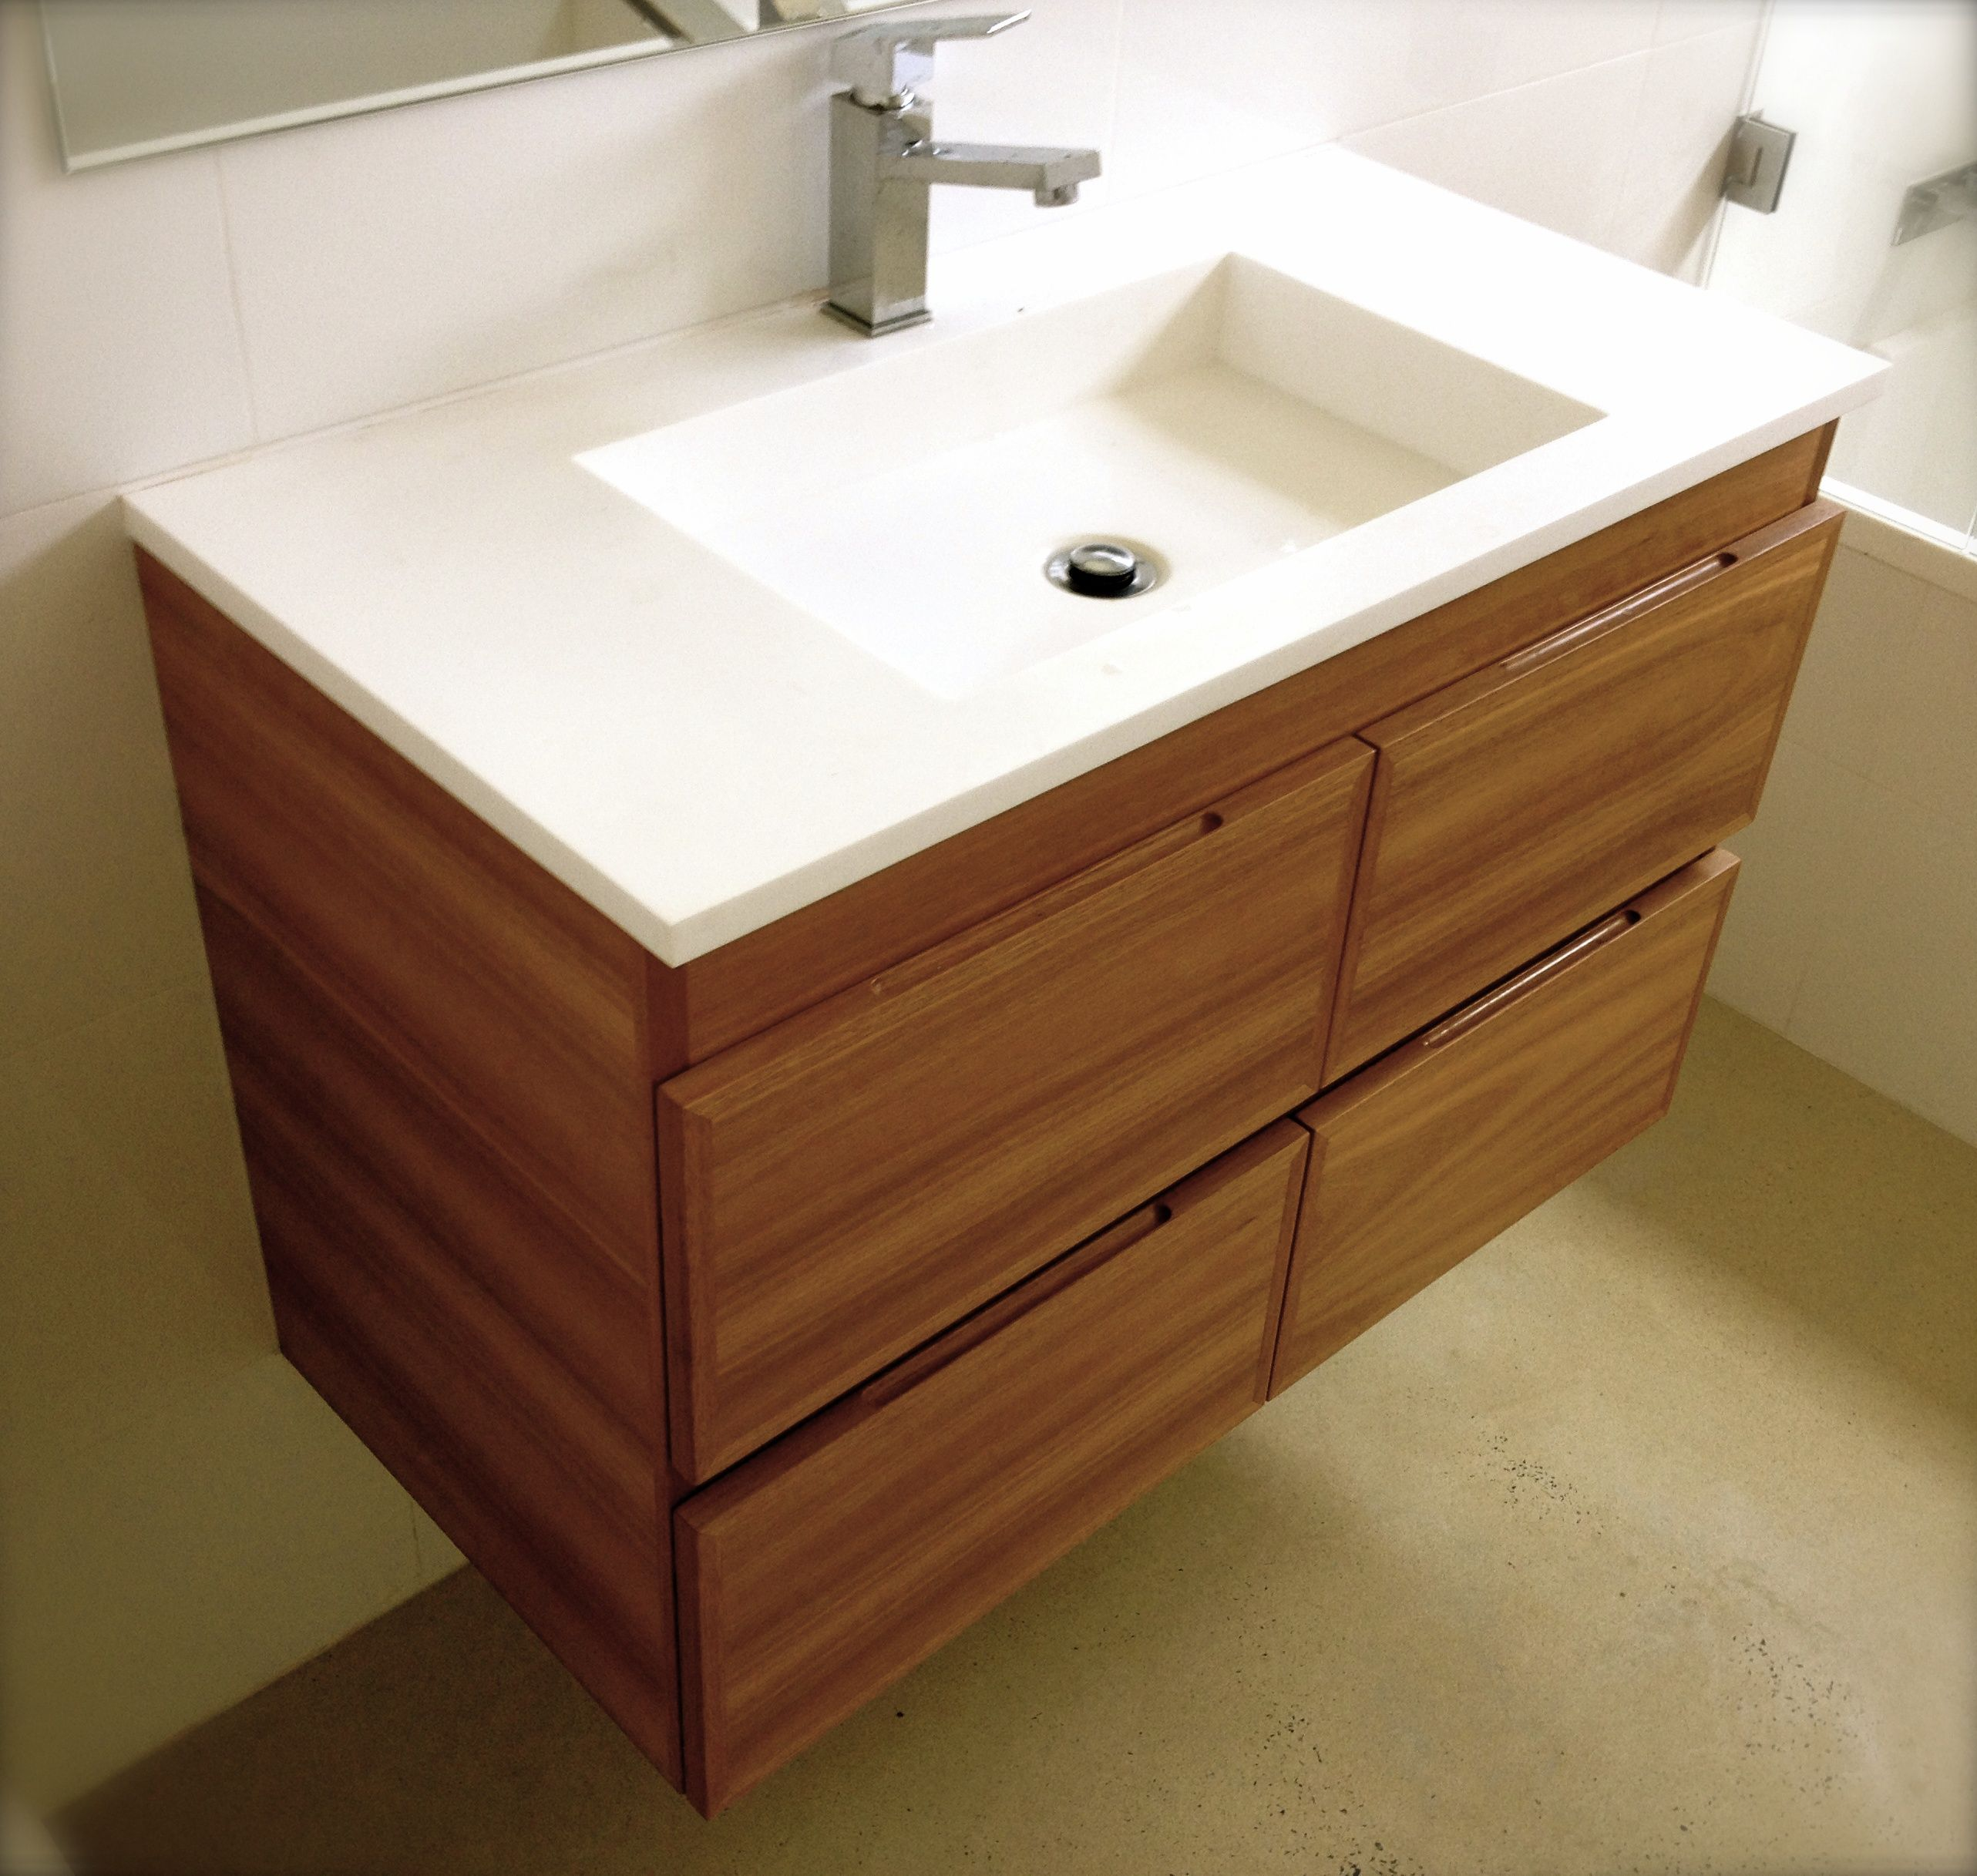 Bathroom Sinks Melbourne undermount bathroom sinks australia. sinks. corner bathroom sinks